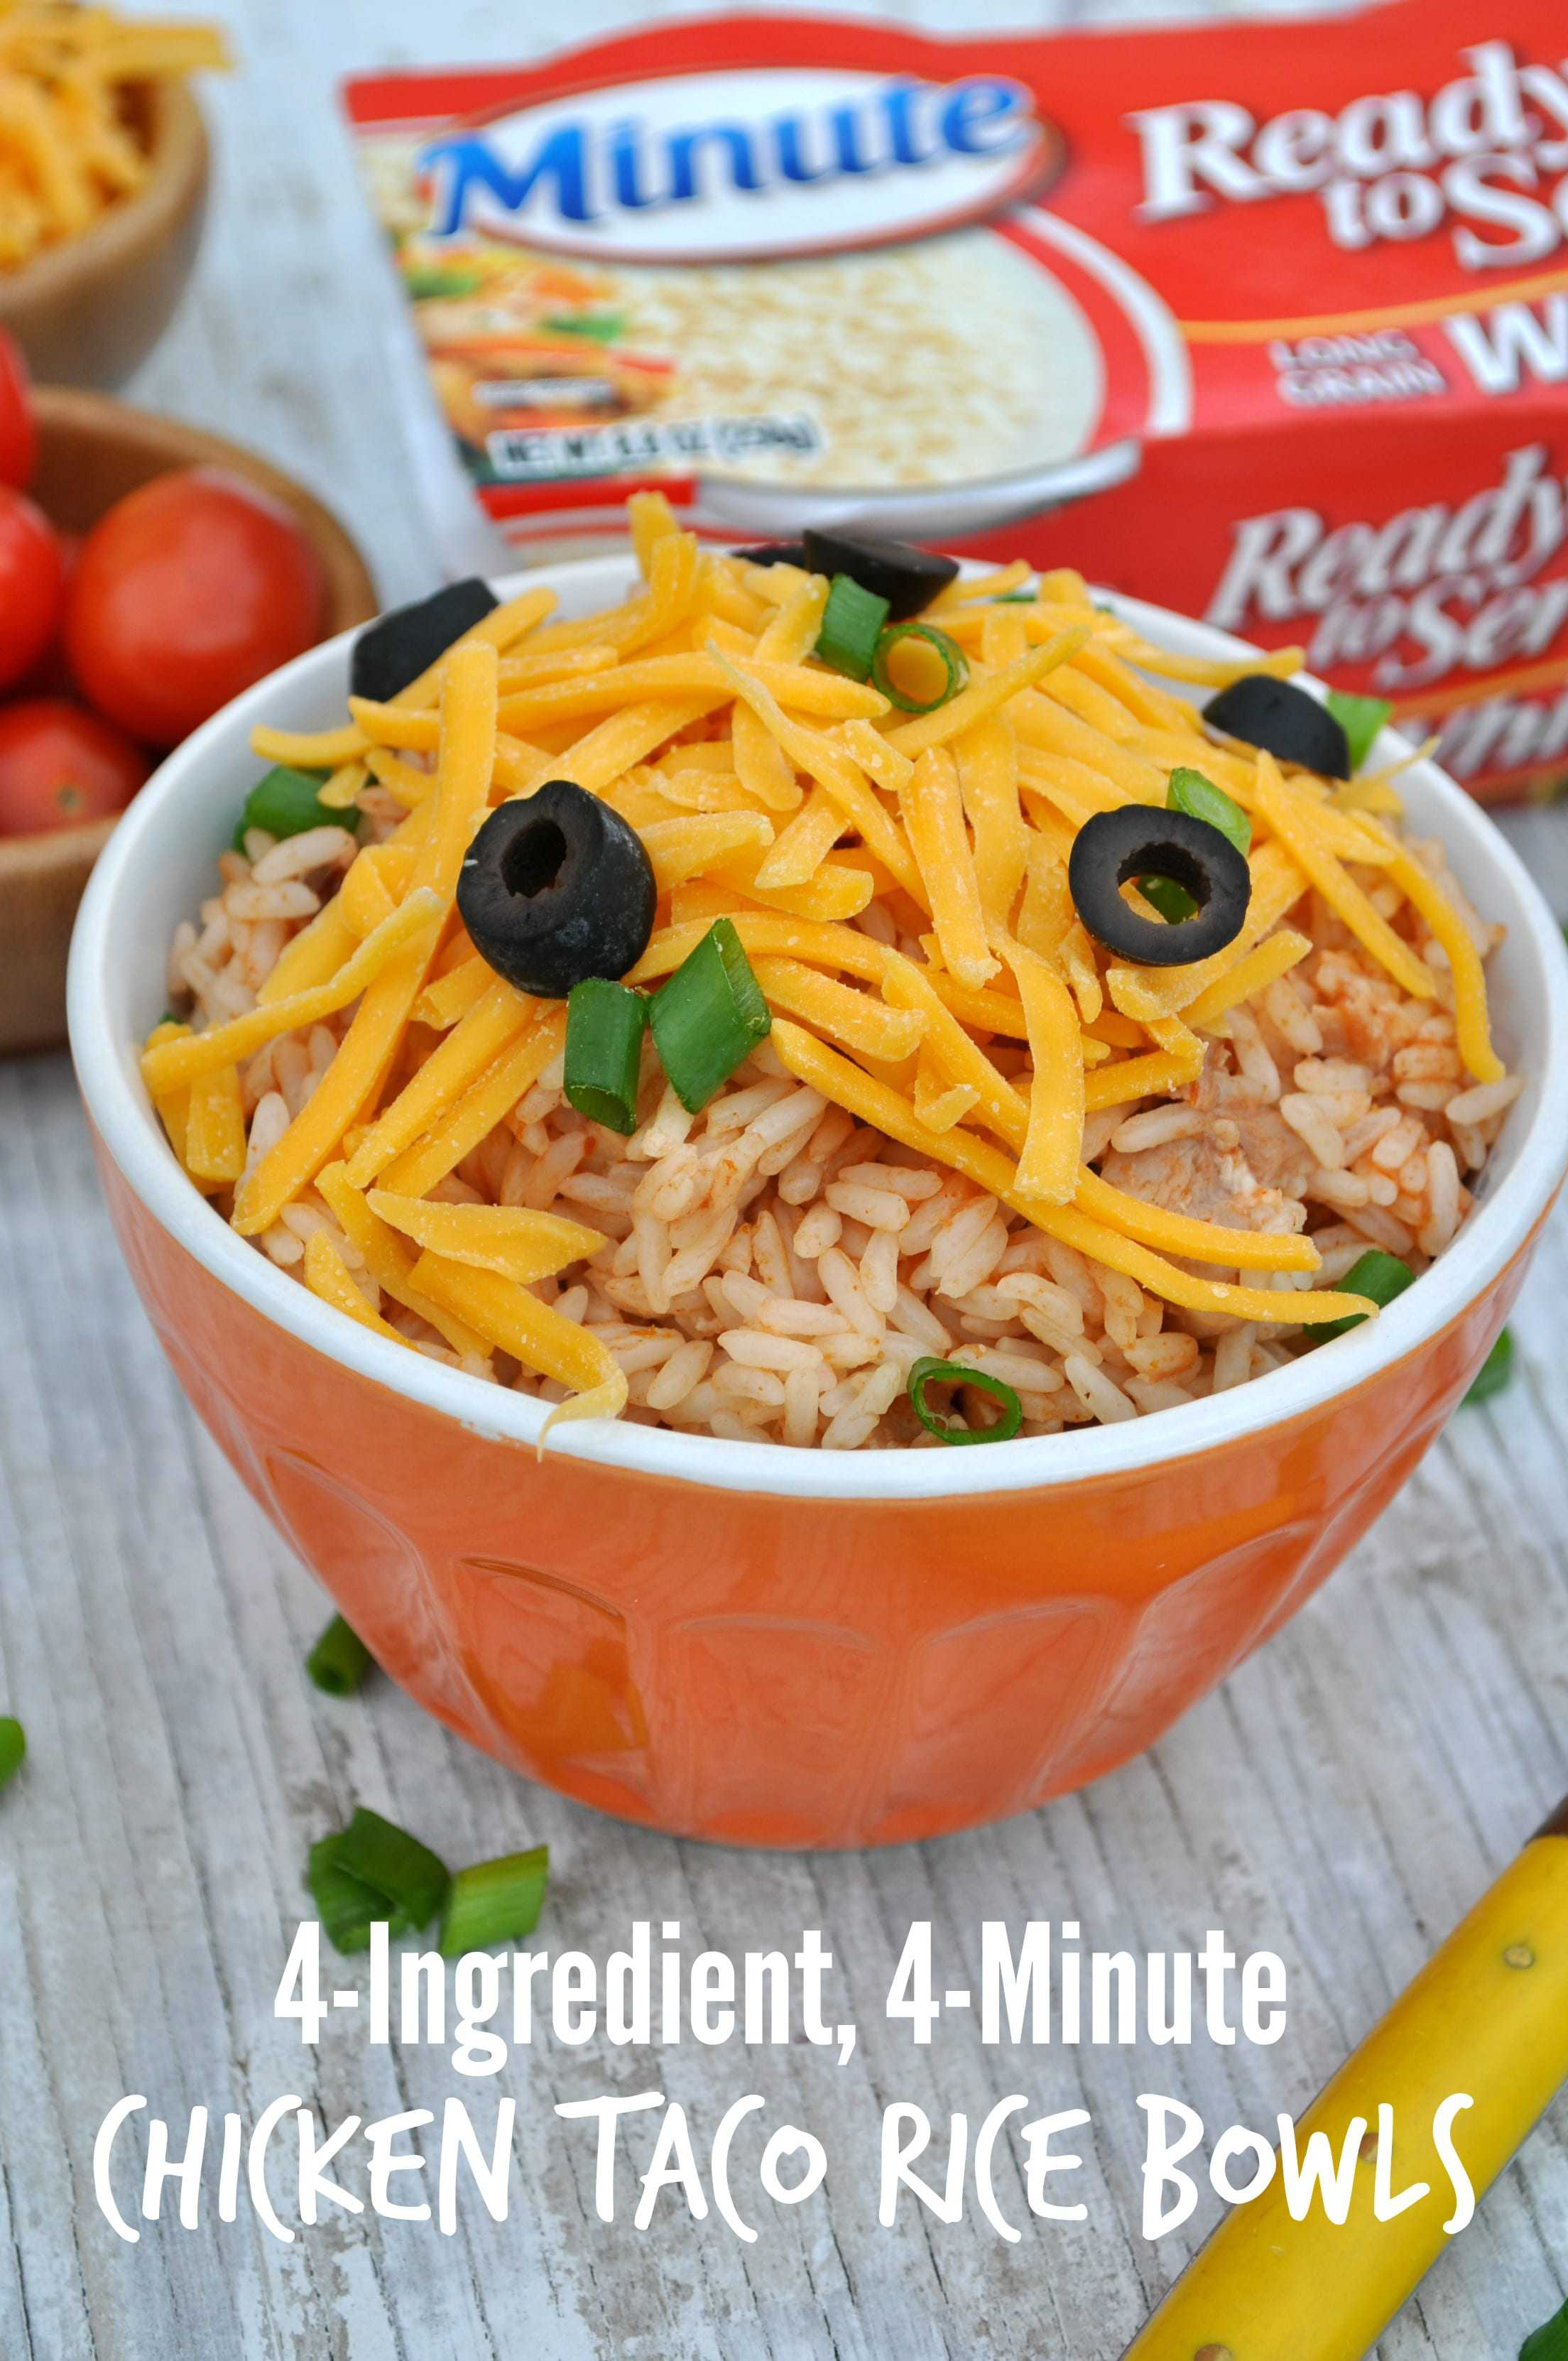 Chicken Taco Rice Bowls 6